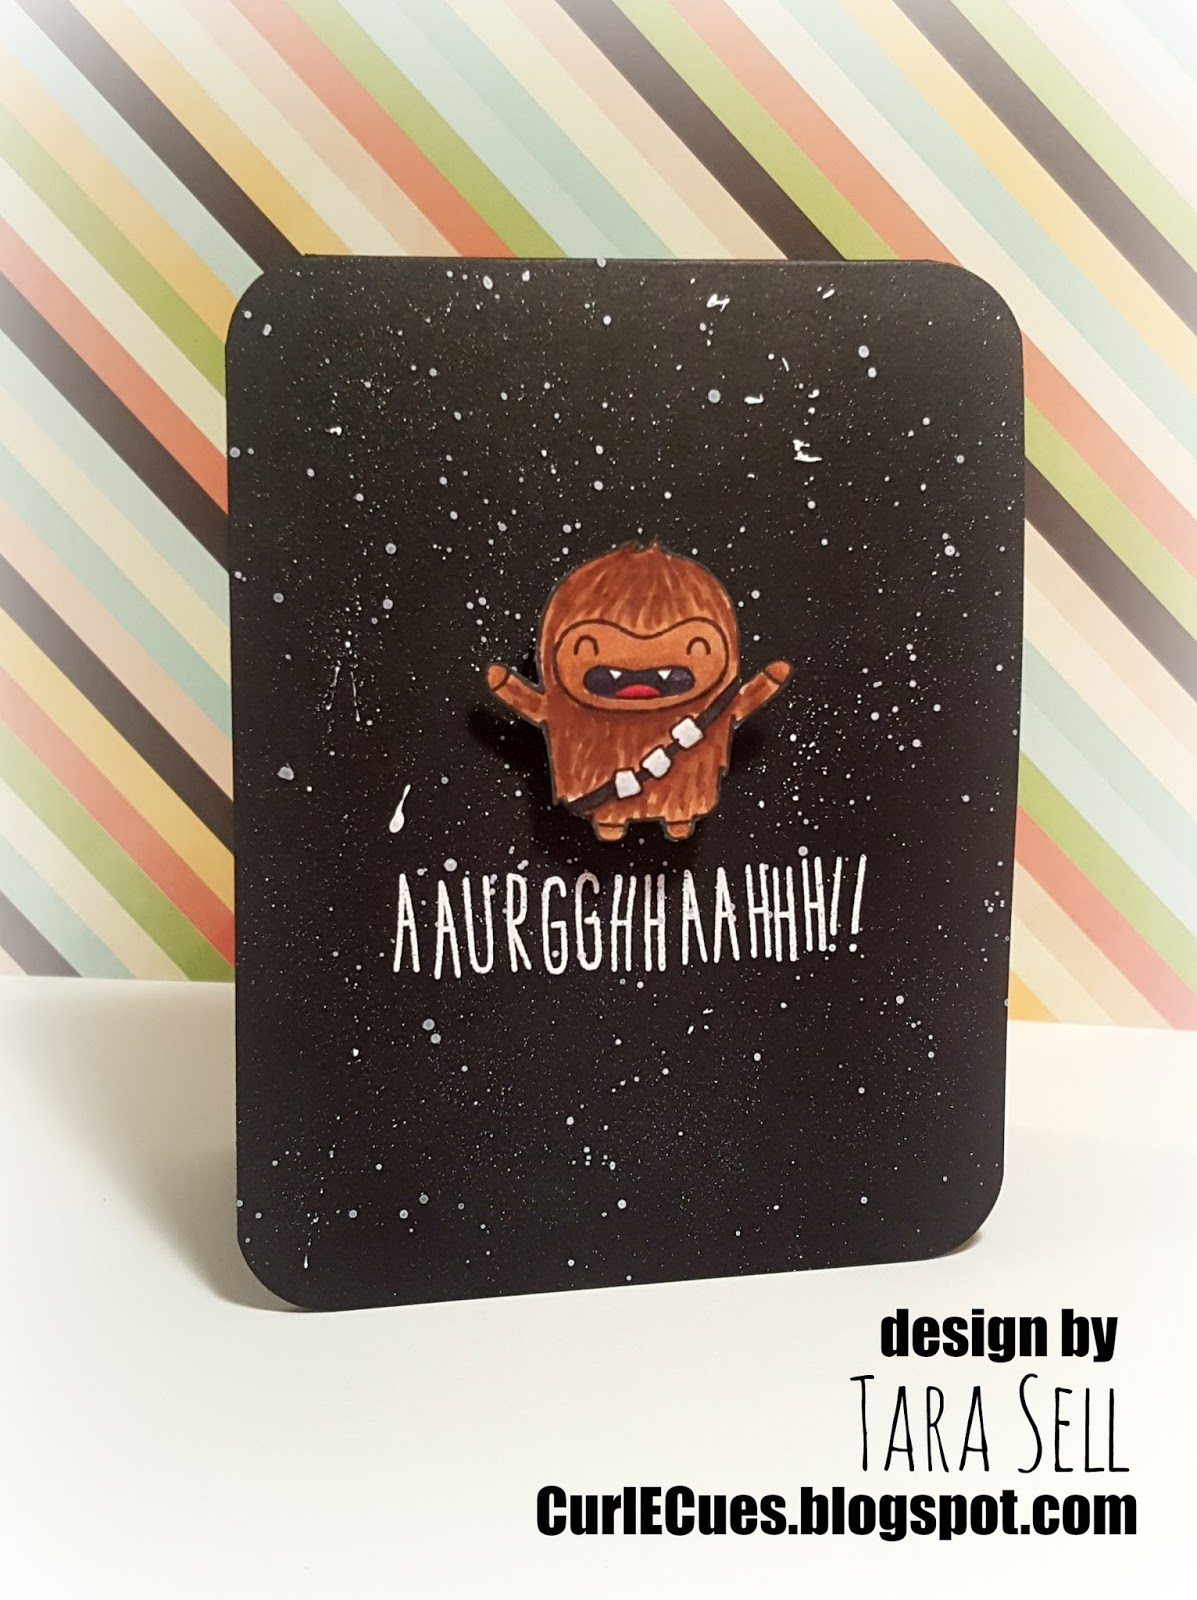 Video star wars chewbacca action wobble curl e cues video star wars chewbacca action wobble bookmarktalkfo Image collections